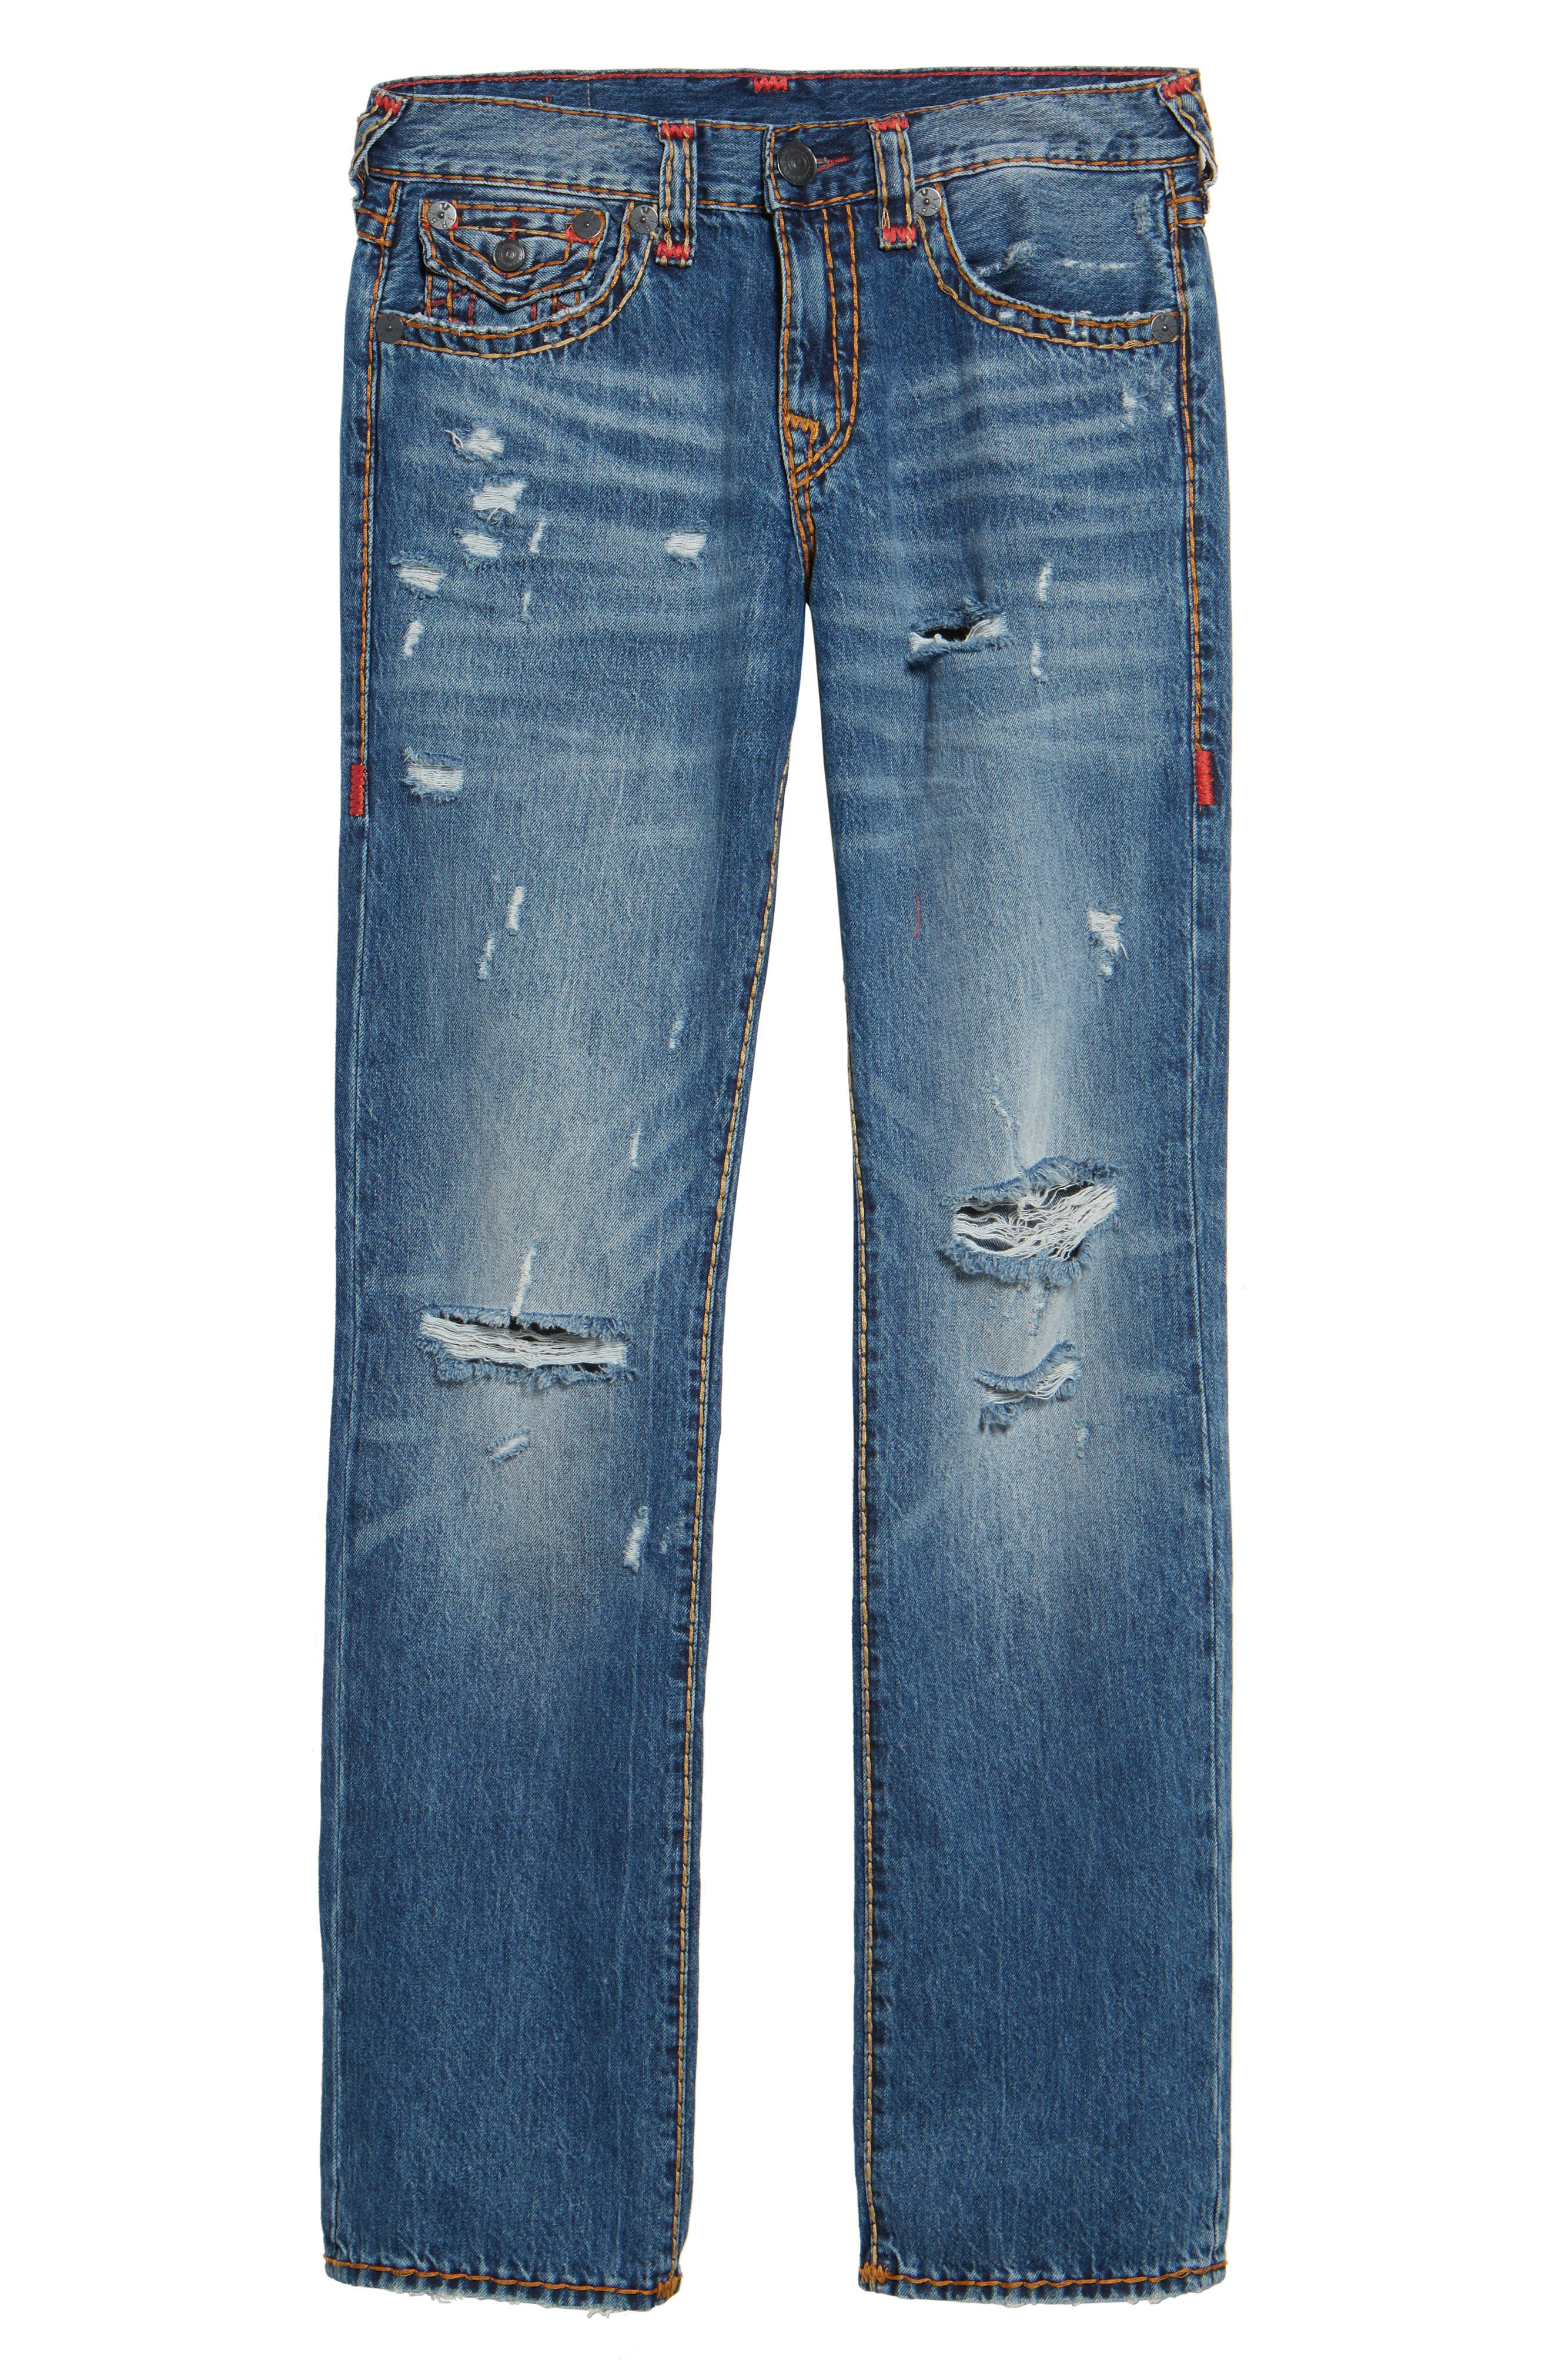 Ricky Relaxed Fit Jeans,                             Alternate thumbnail 6, color,                             WORN EVER FADE